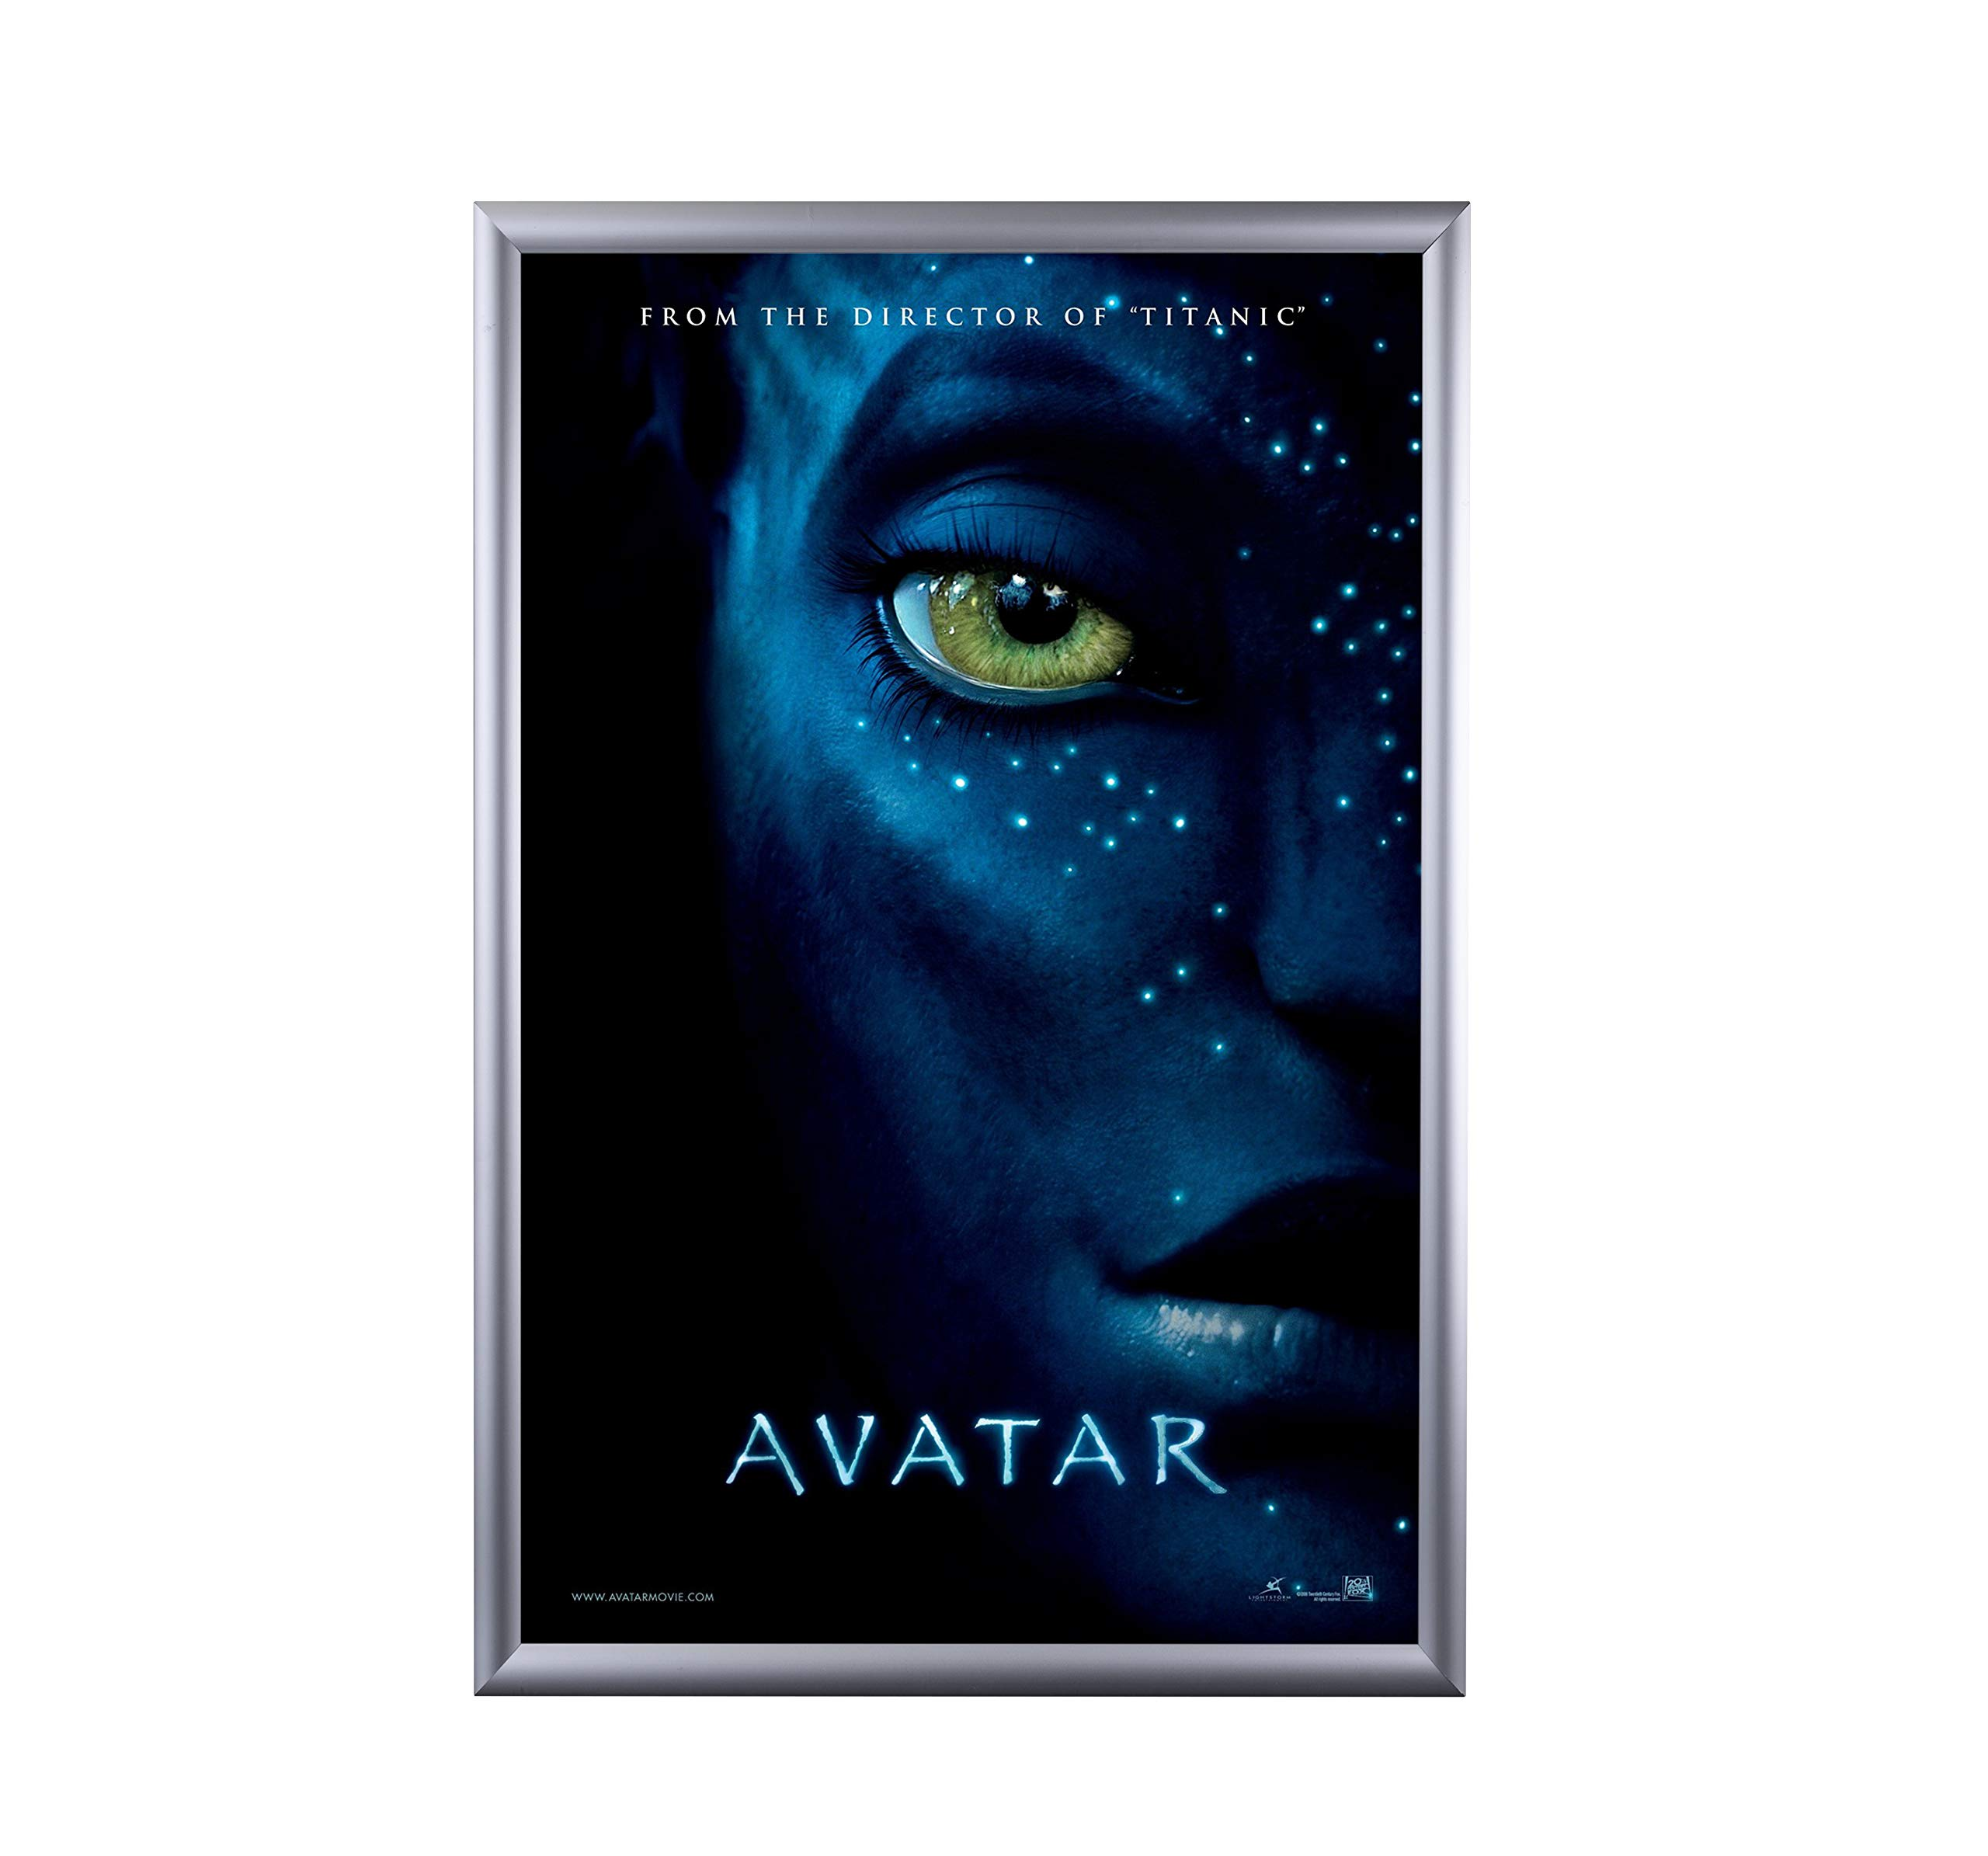 BNV Movie Poster Frame 24x36 Inches, Silver 1'' Aluminum Profile,Front Load Snap Frame, Wall Mounting, Portrait and Landscape Mode, Easy Installation, Anti-Glare, PVC Cover, Lightweight